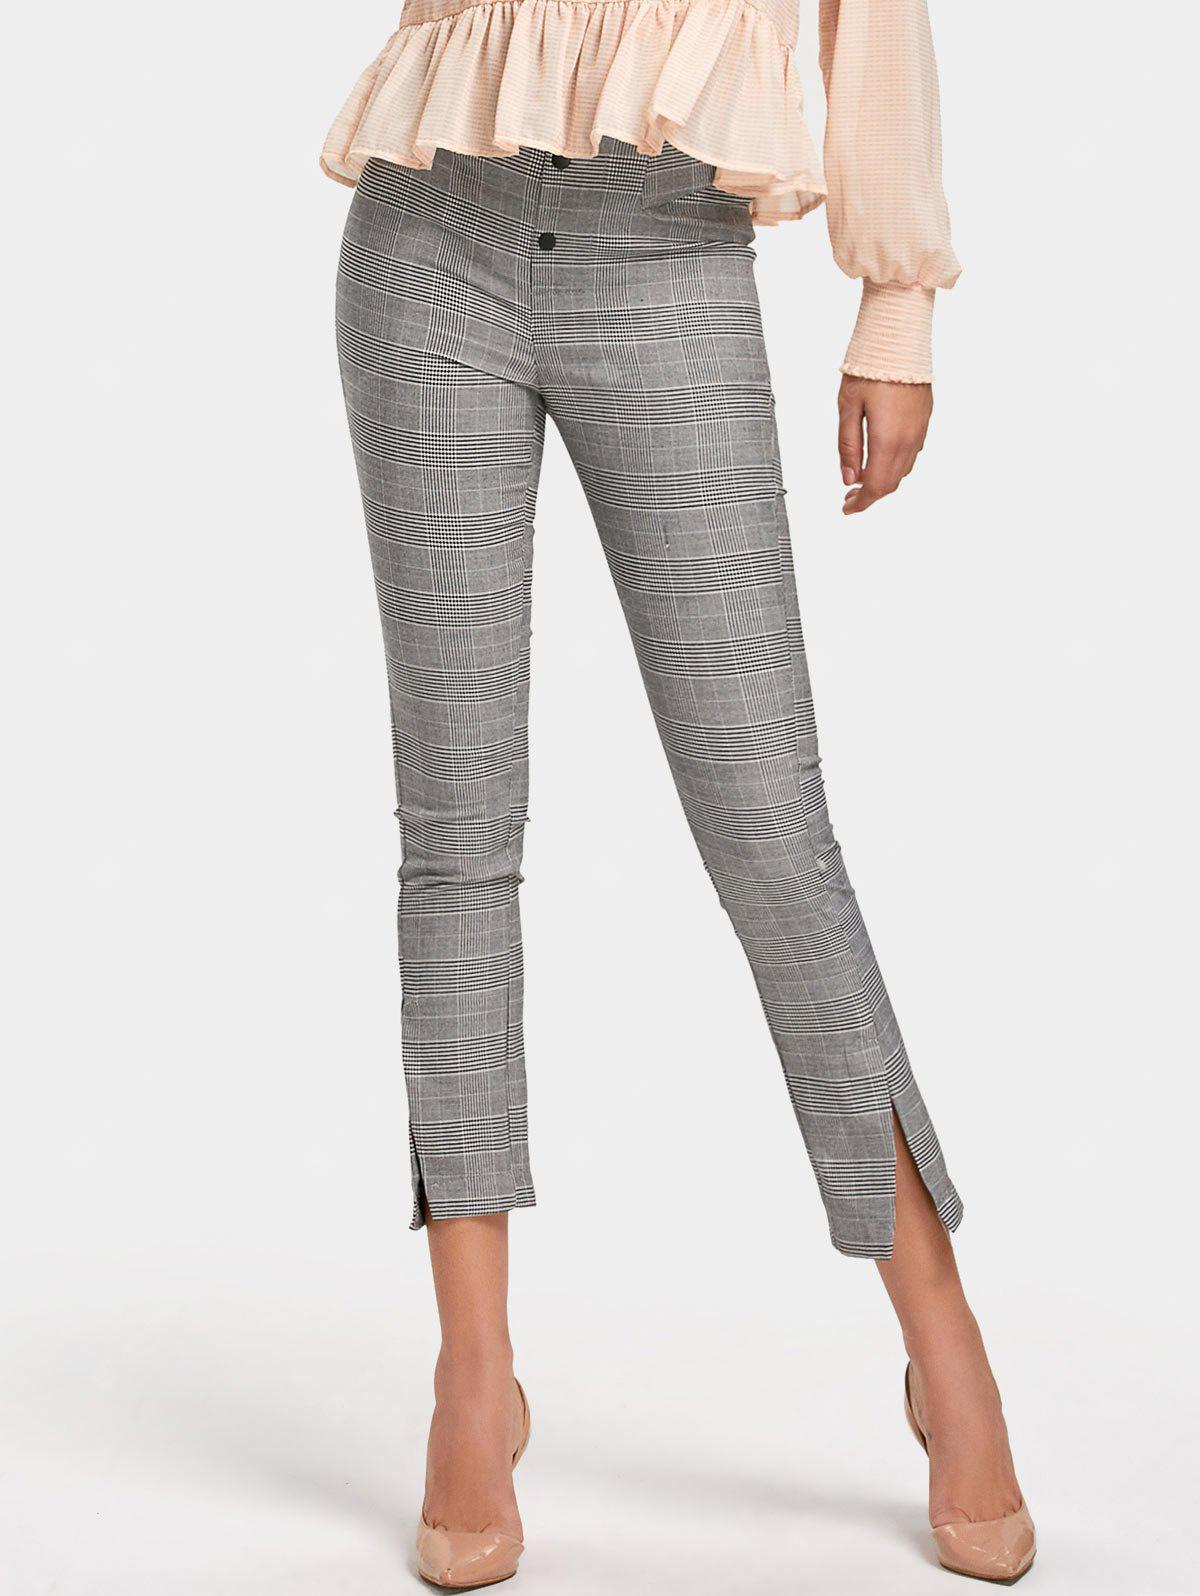 Checked High Waisted Slit Pencil Pants